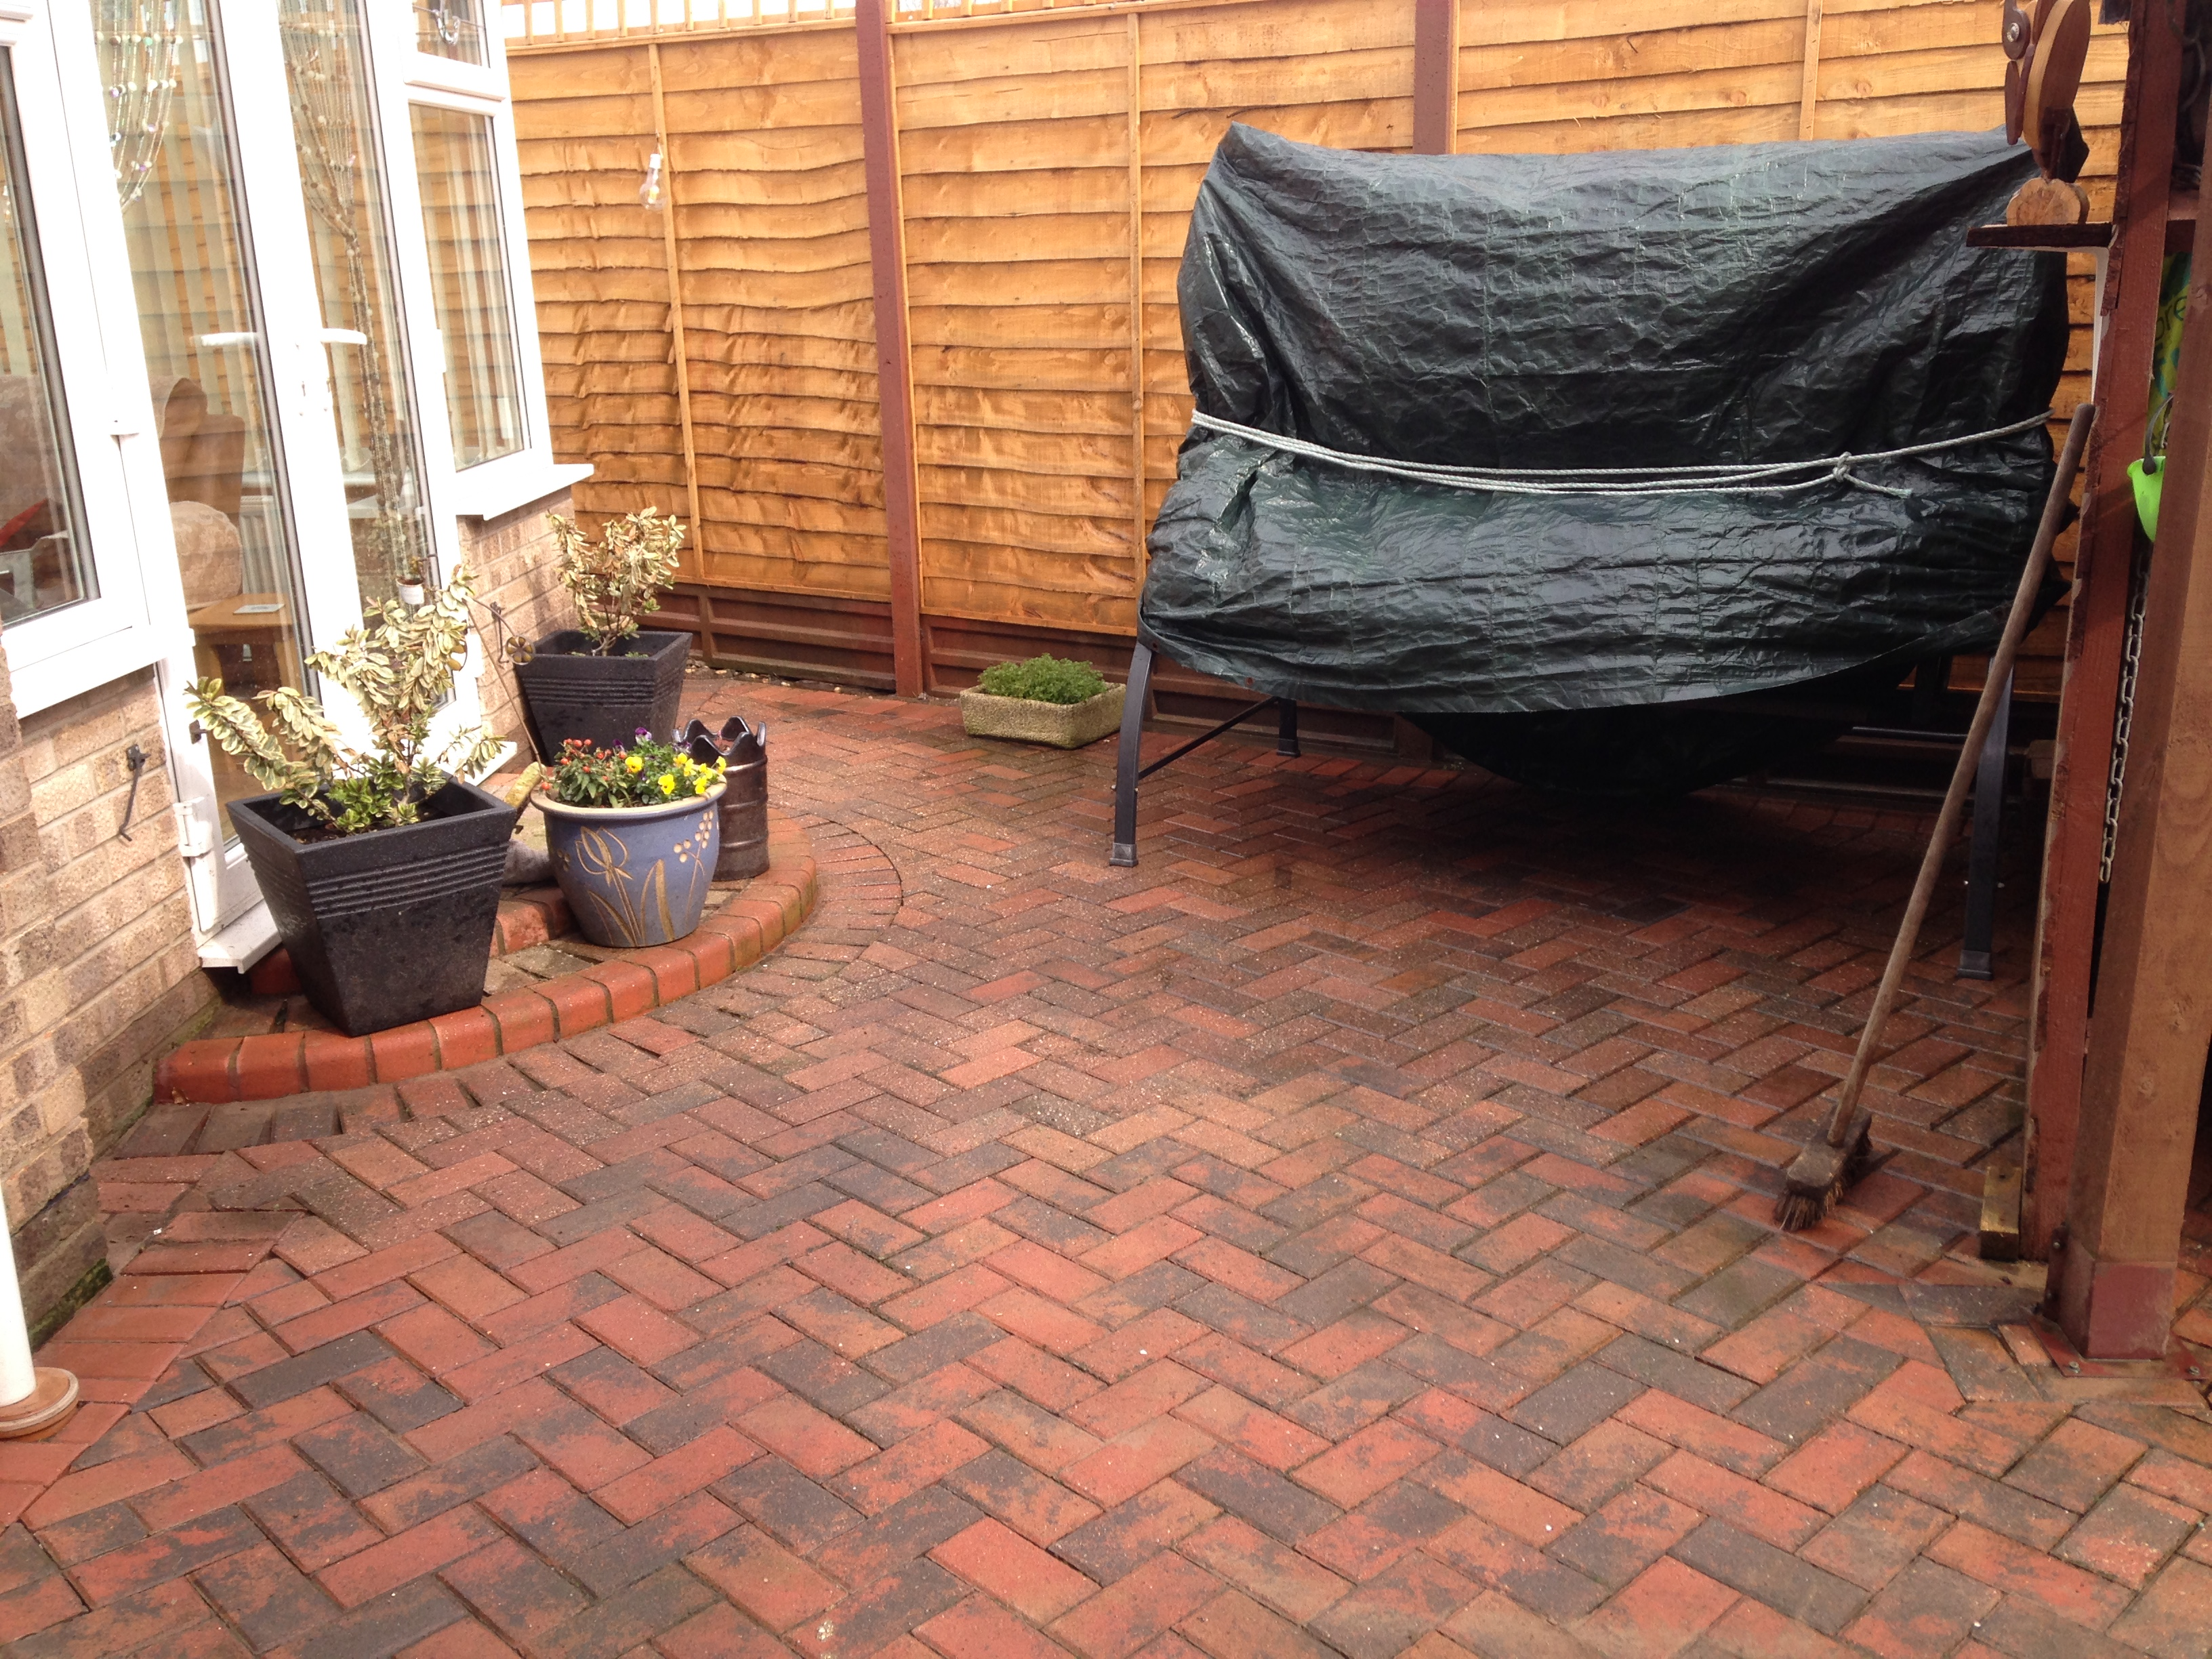 Jet Washing Service Hull Driveway Jet Washing Hull Beverley Cottingham Areas Patio Jet Washing Service Hull Block Paving Jet Washing Hull